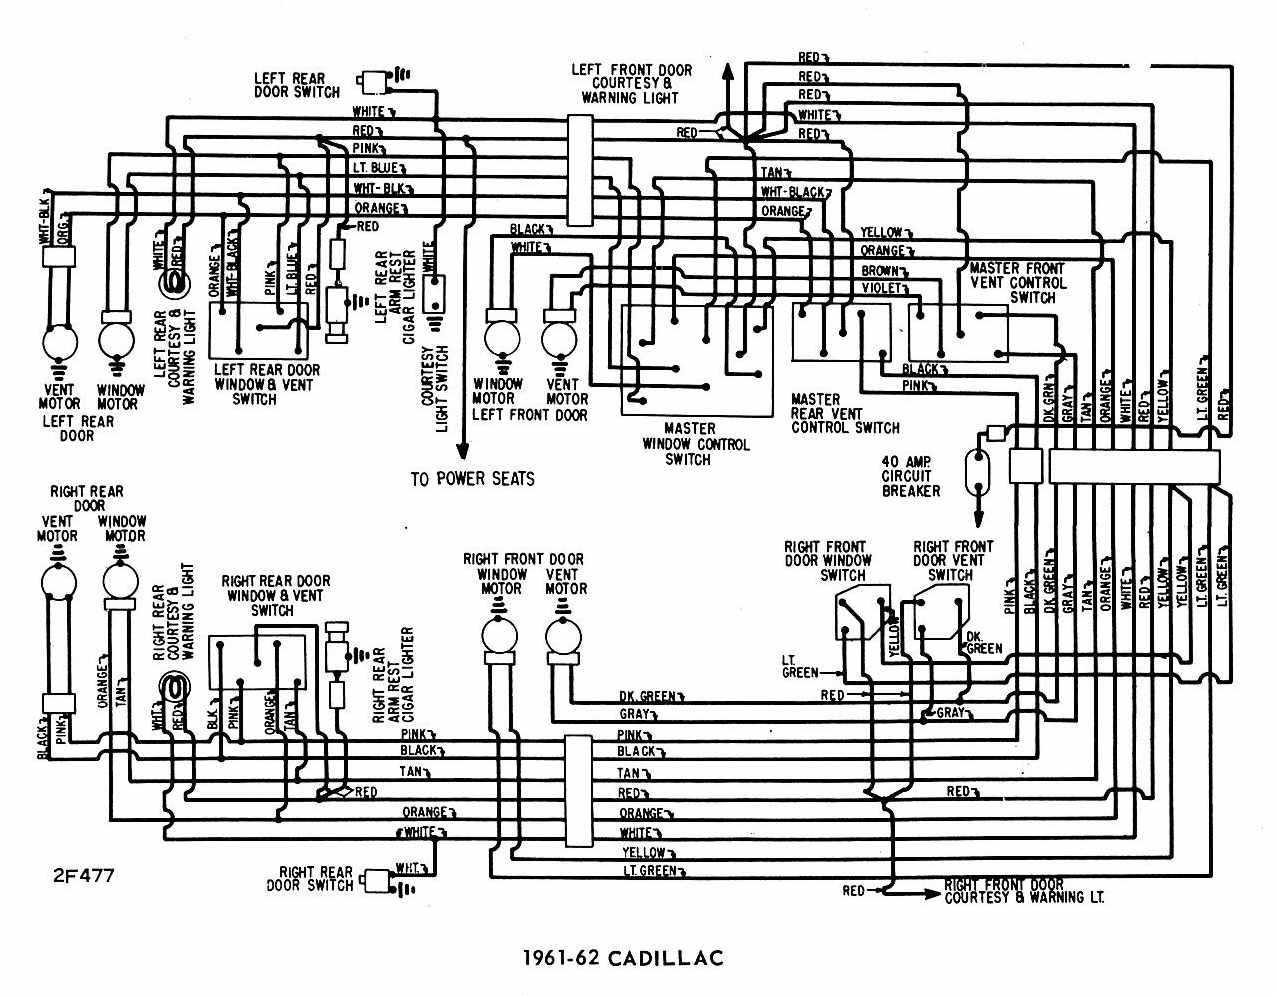 Fuse Box On Cadillac Cts 2003 Wiring Library Engine Diagram Free Vehicle Diagrams U2022 Rh Generalinfo Co